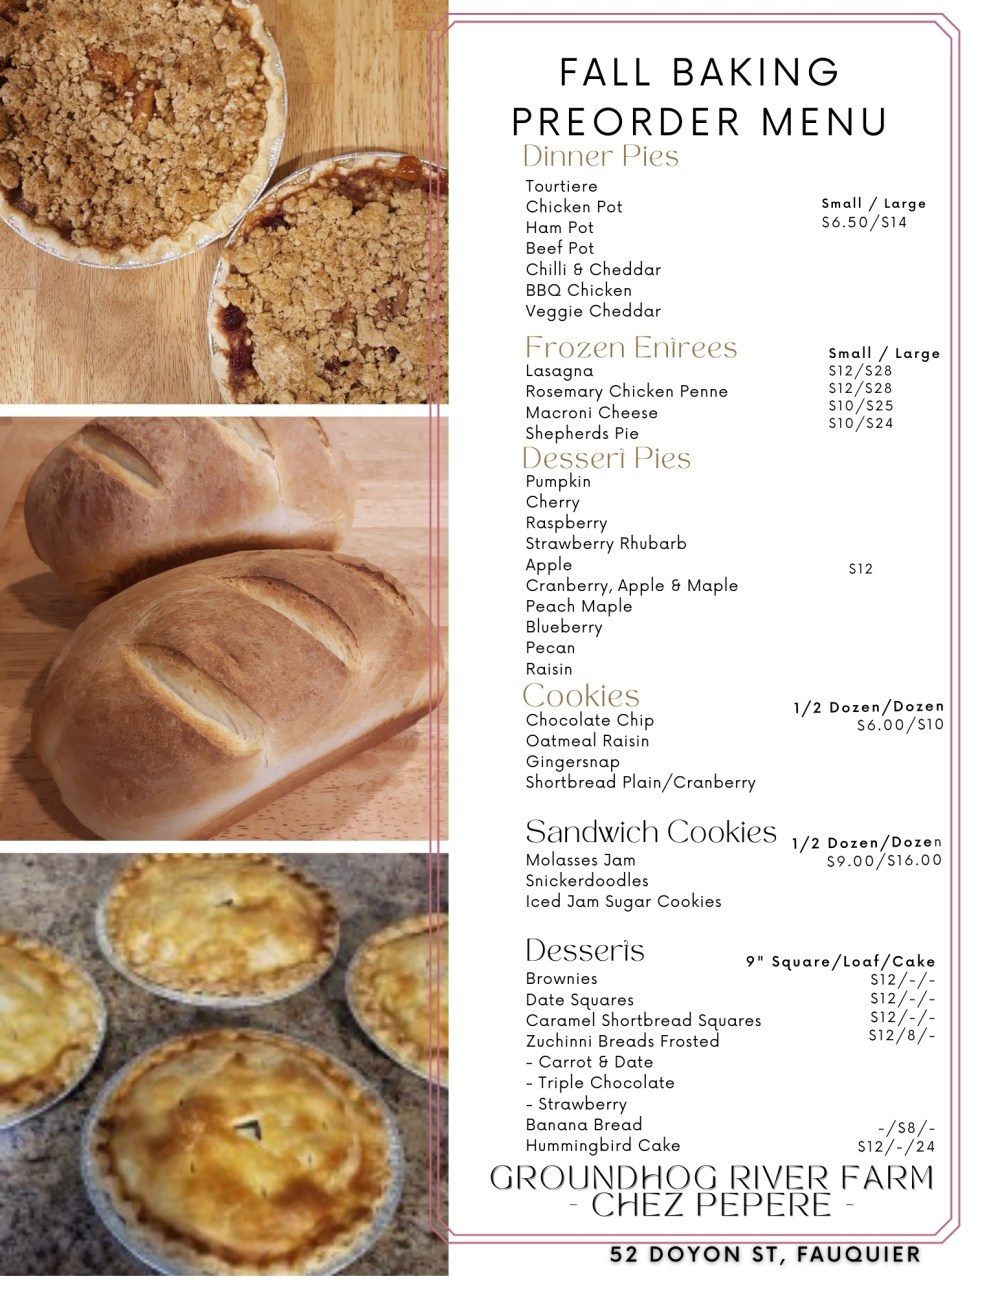 Fall Baking Preorder Menu is now available. Order your Pies, Desserts and Freezer Meals for winter now.